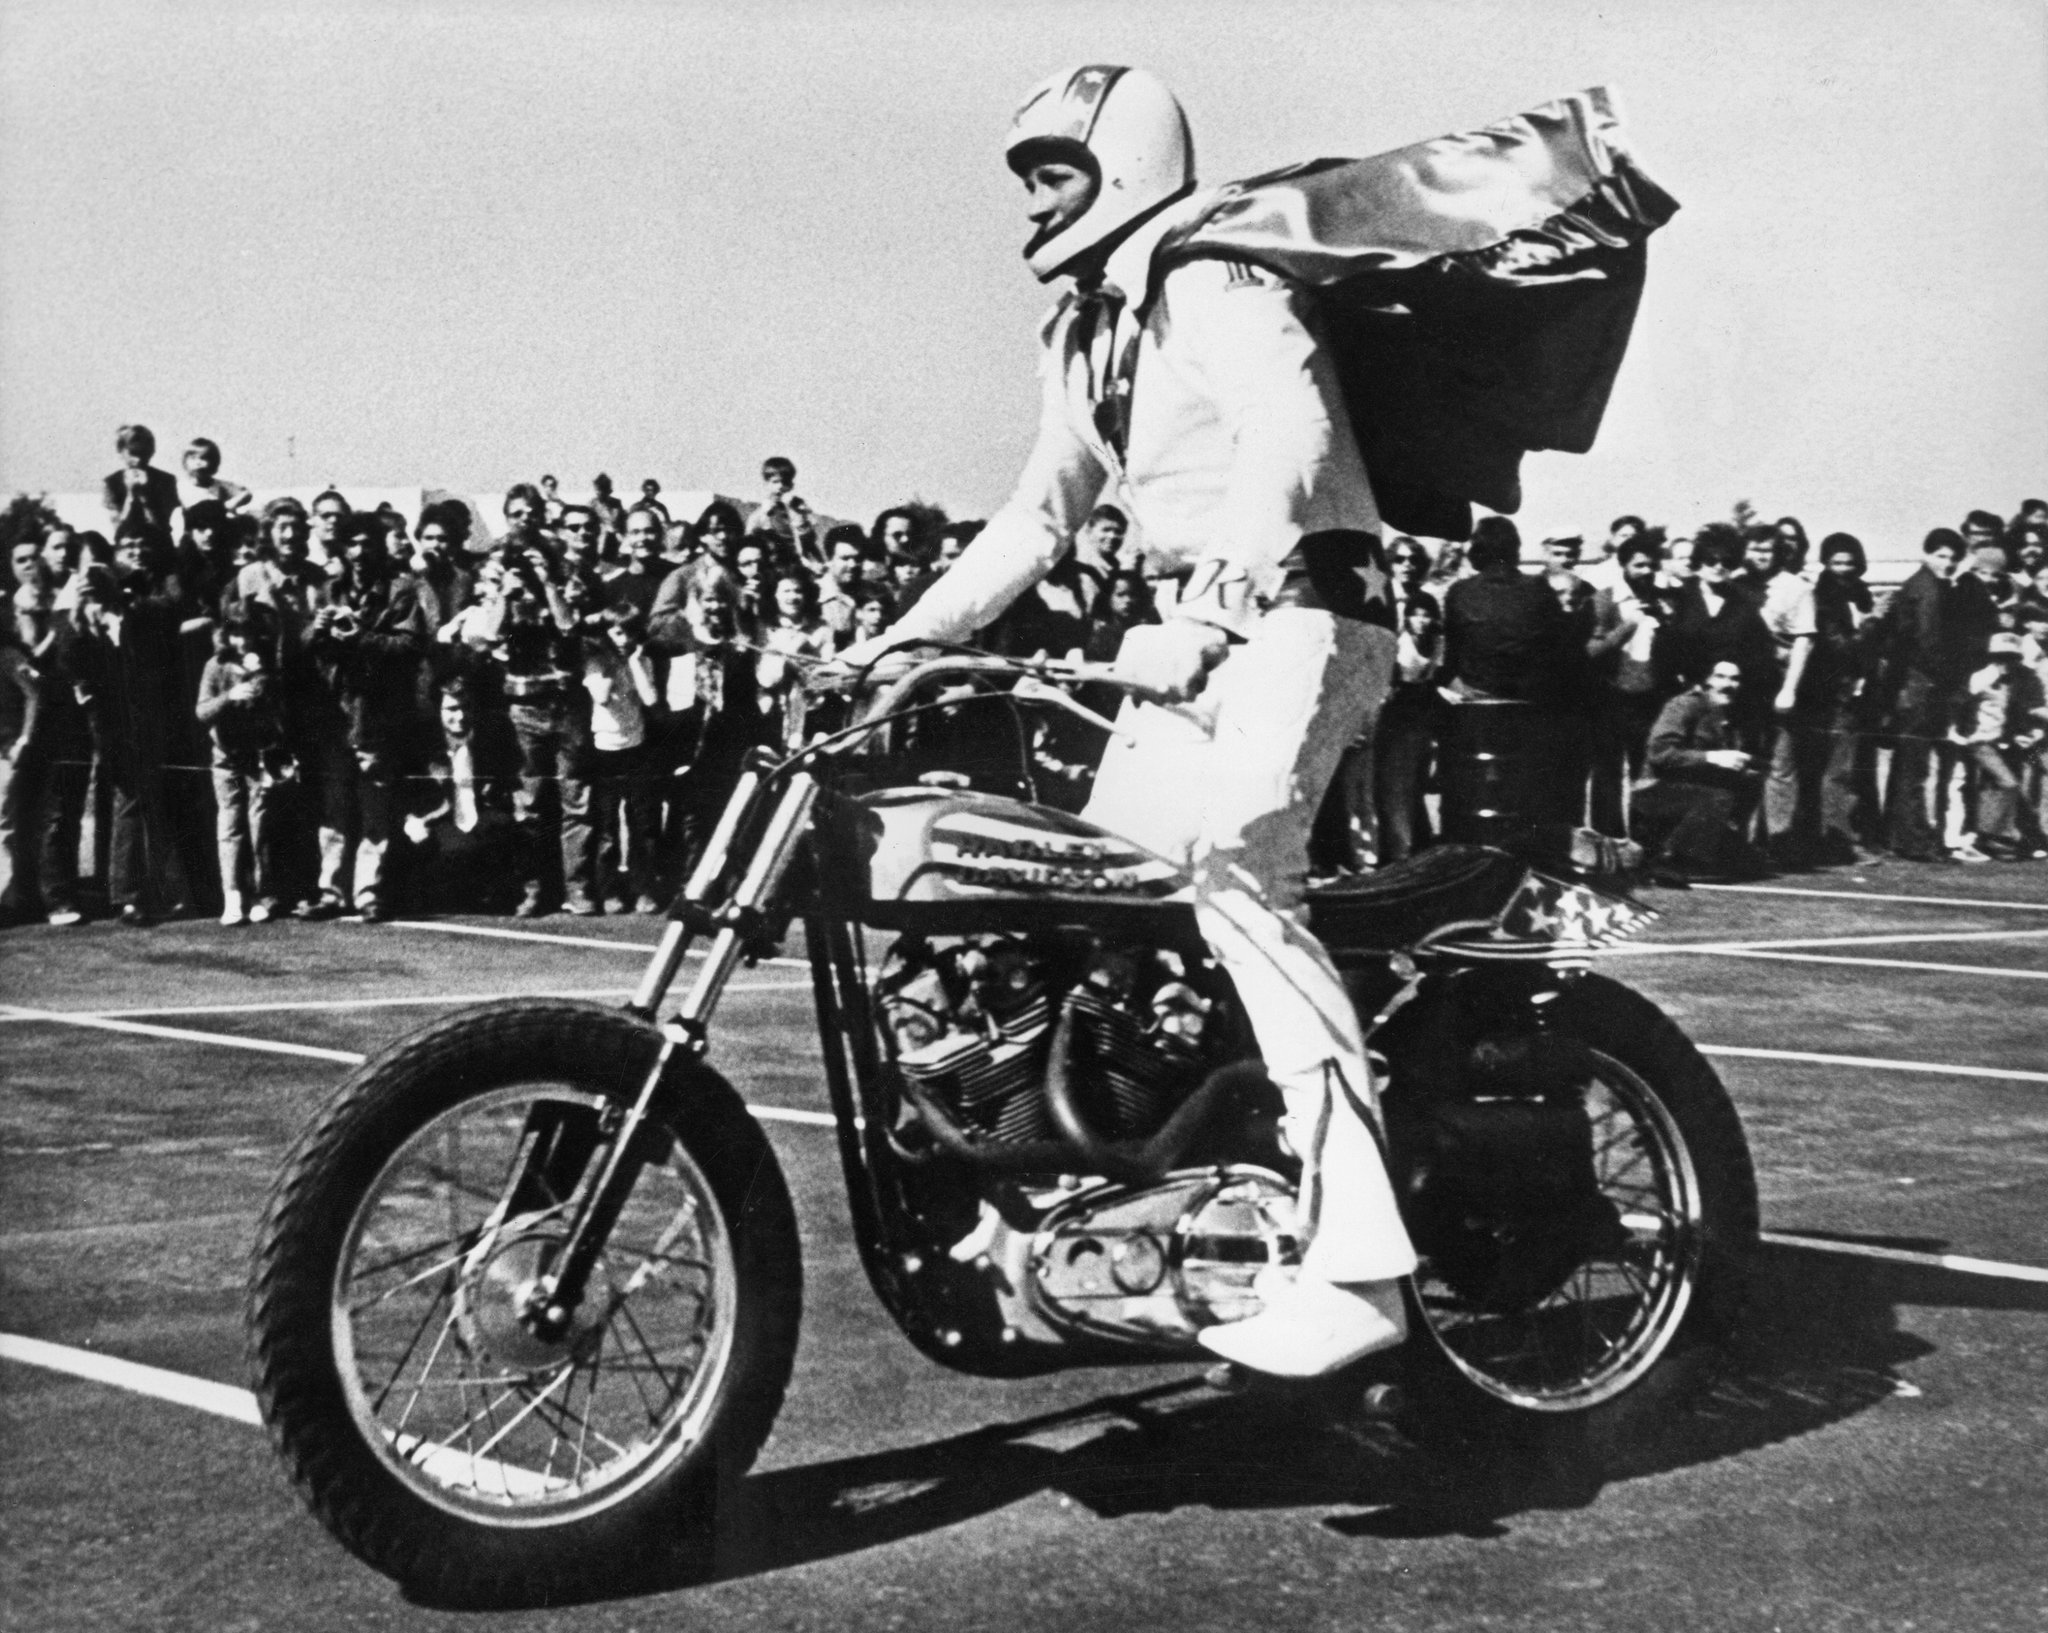 Evel Knievel Does It Again! But This Time Through His Truck